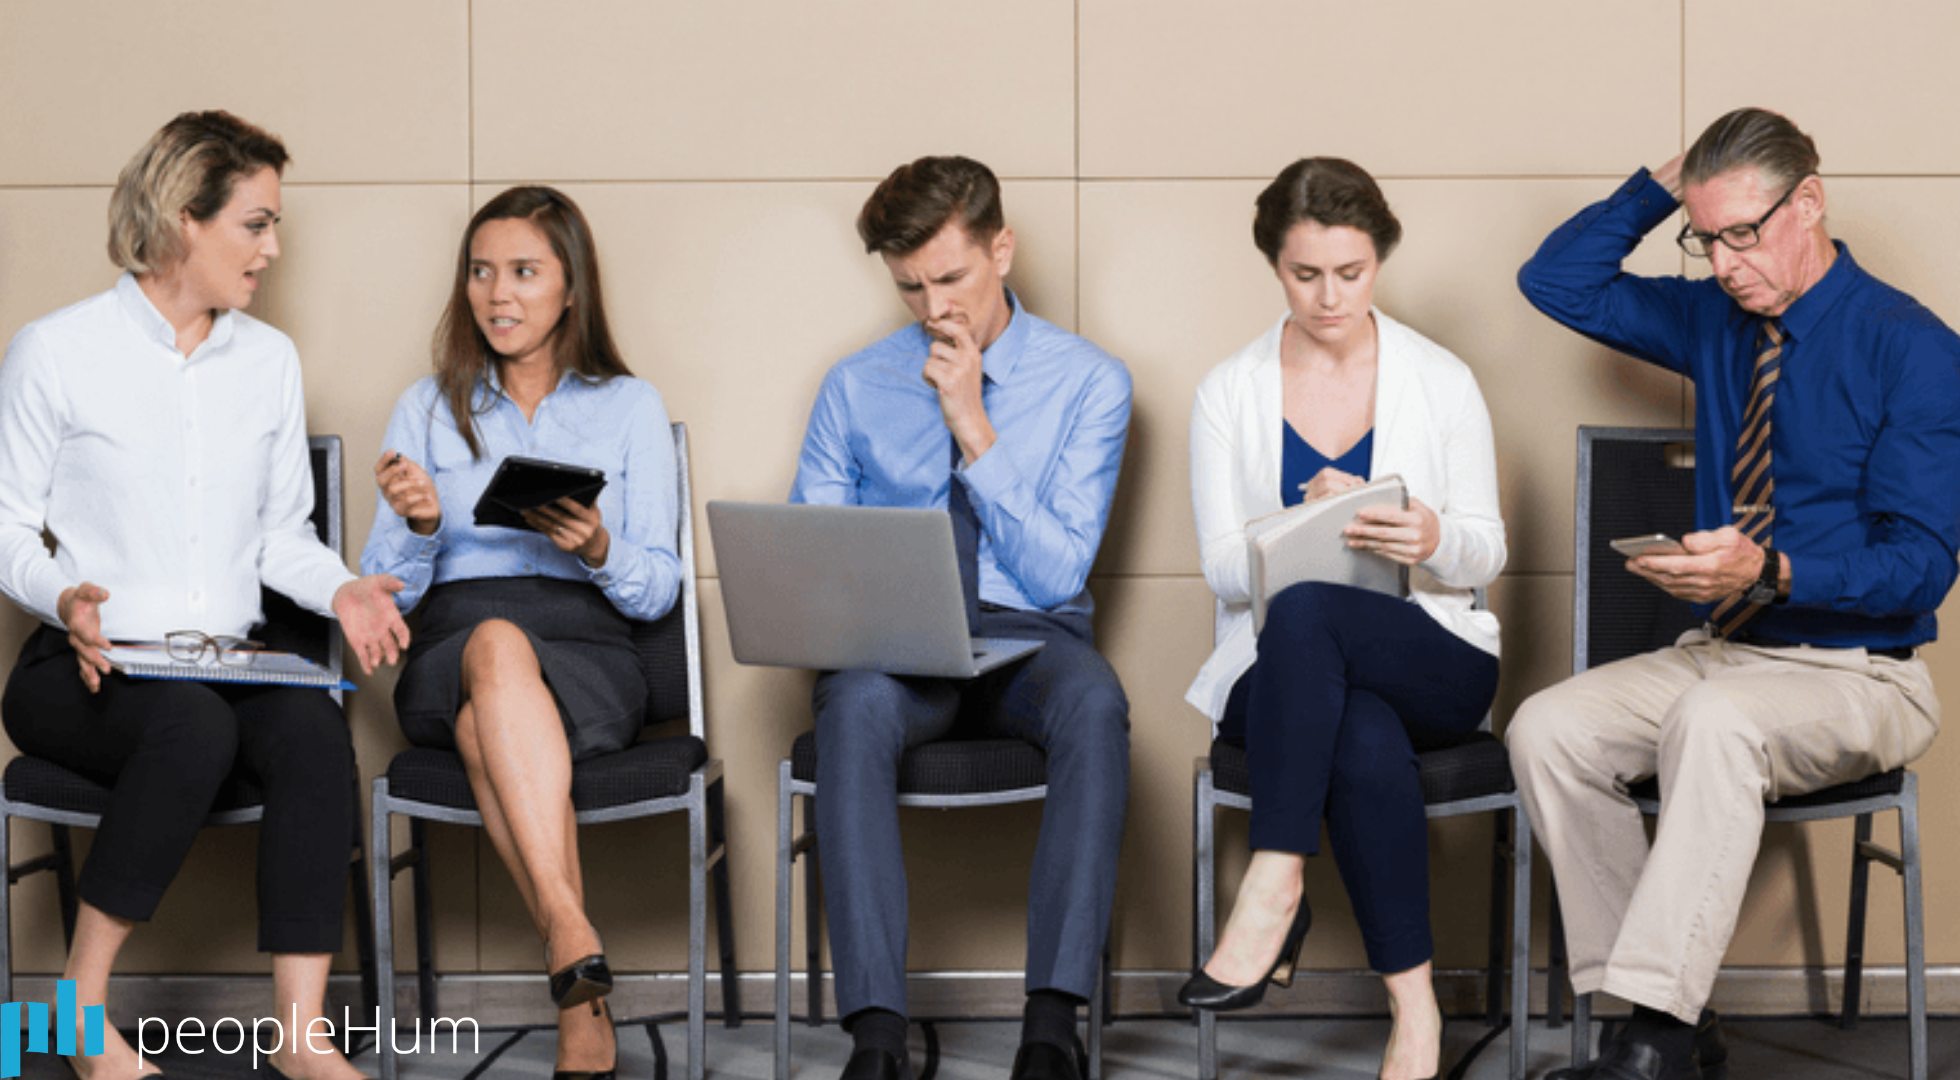 Let's get rid of hiring interview question clichés